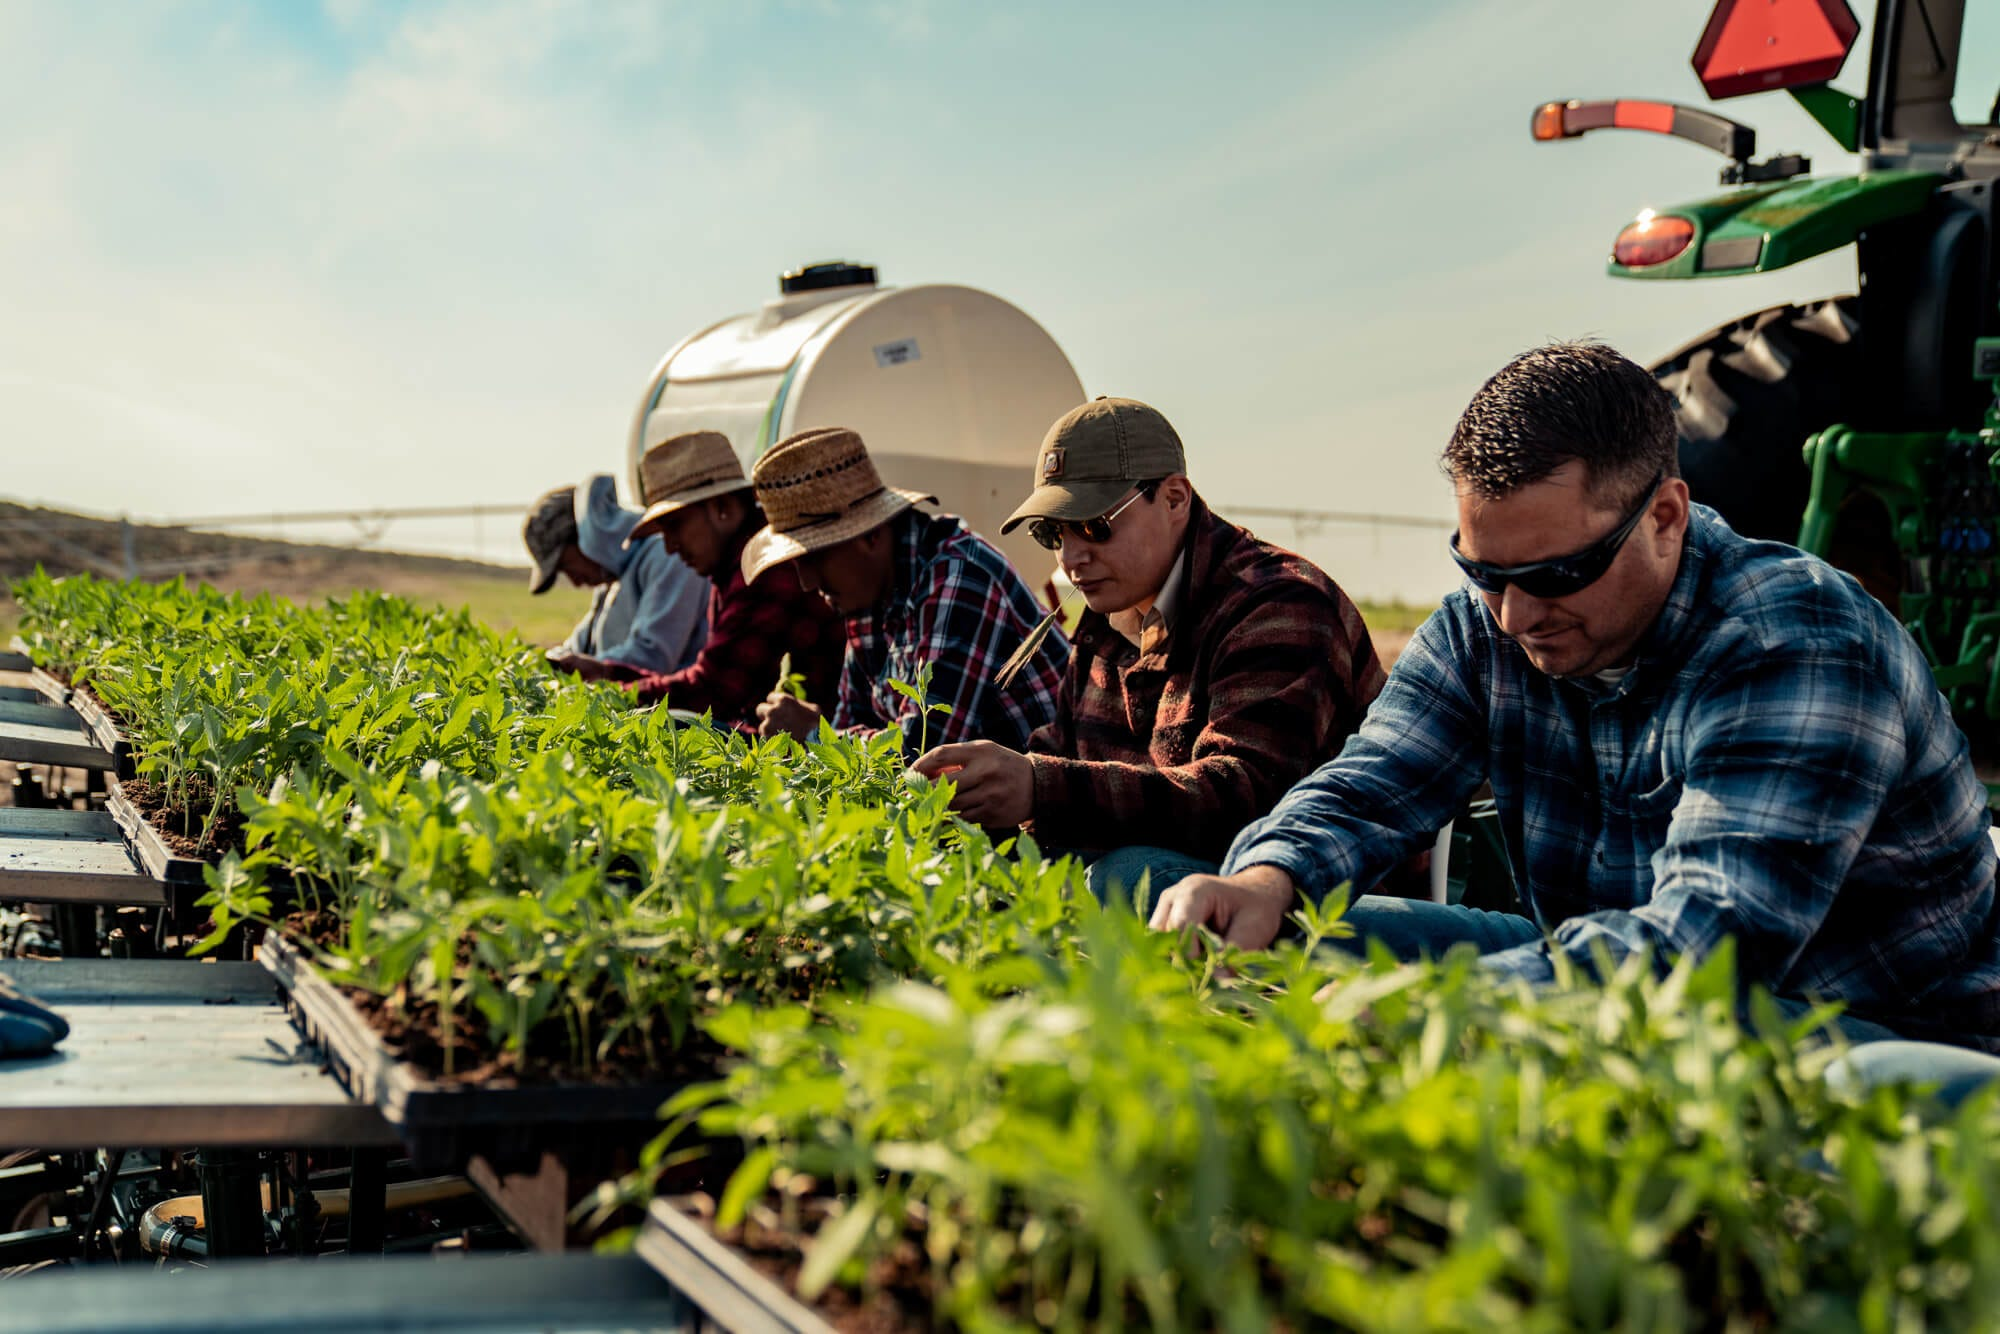 Beyond the Seed: Four Faces On The Farm in Planting Season